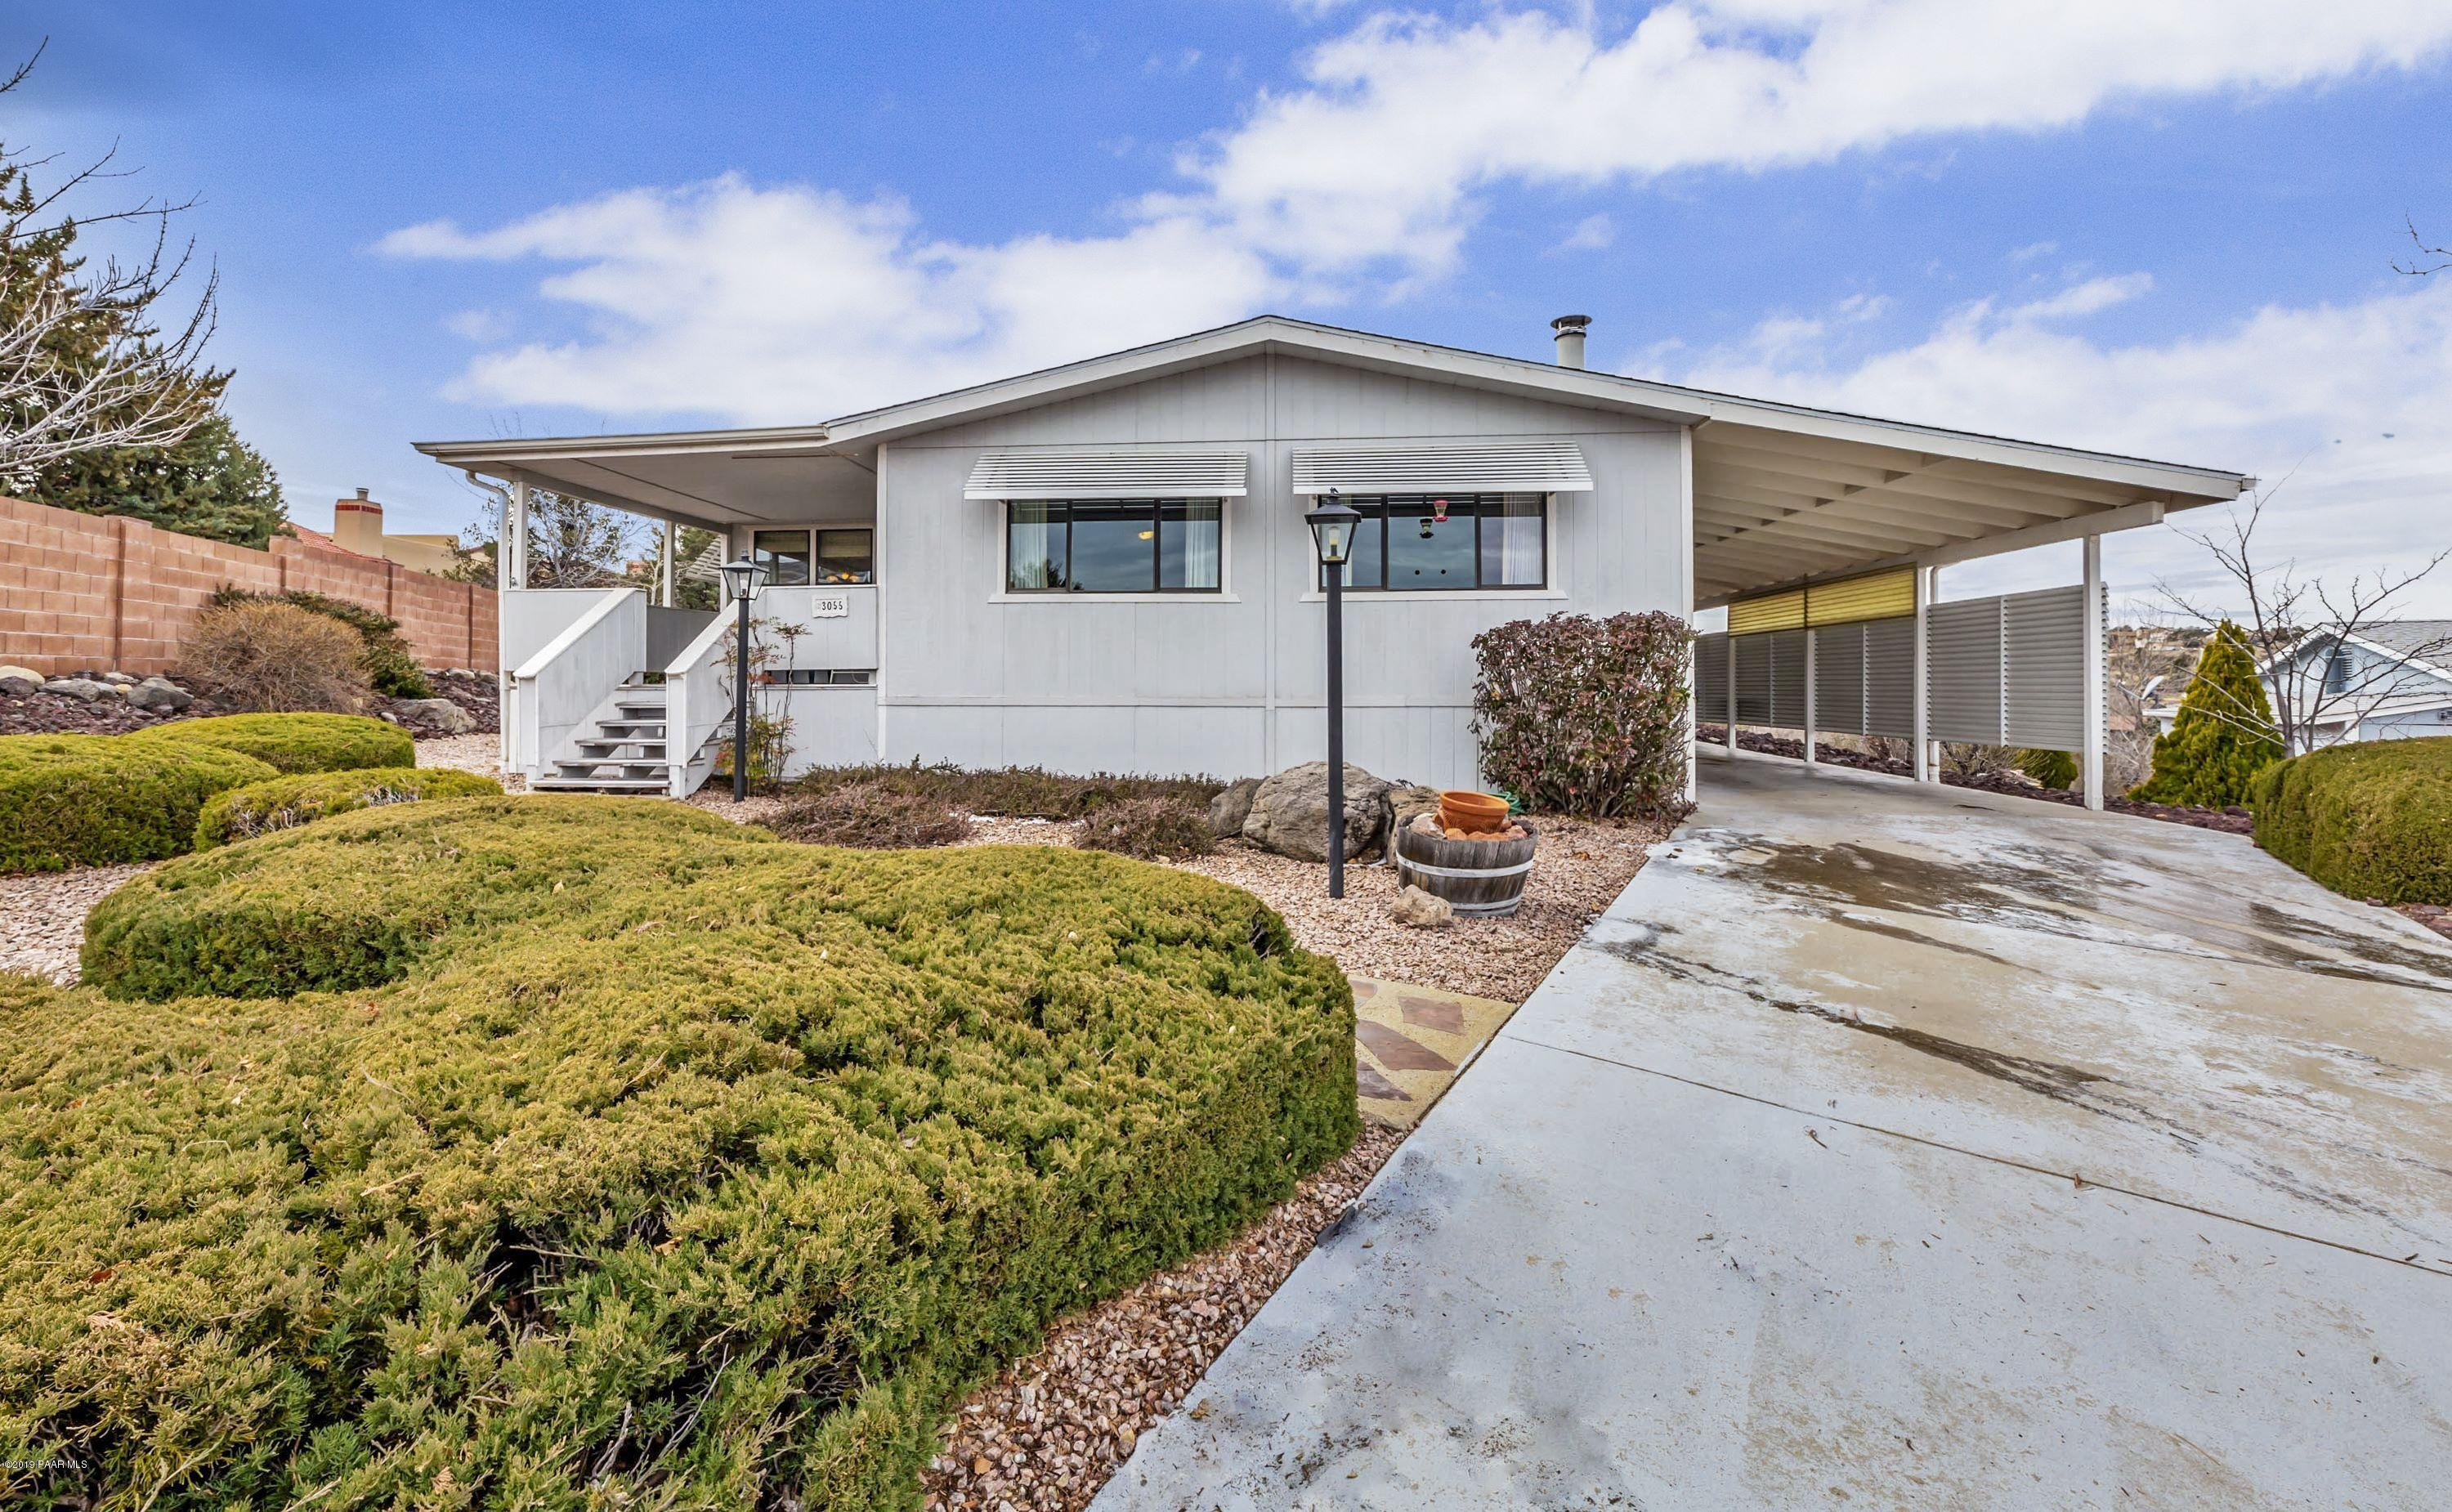 3055 Georgetown Drive Prescott Joe Karcie Featured Properties for Sale Prescott AZ Real Estate - Joe Karcie REALTOR RE/MAX Mountain Properties Your Source for Buying and Selling Real Estate in the Prescott Area.